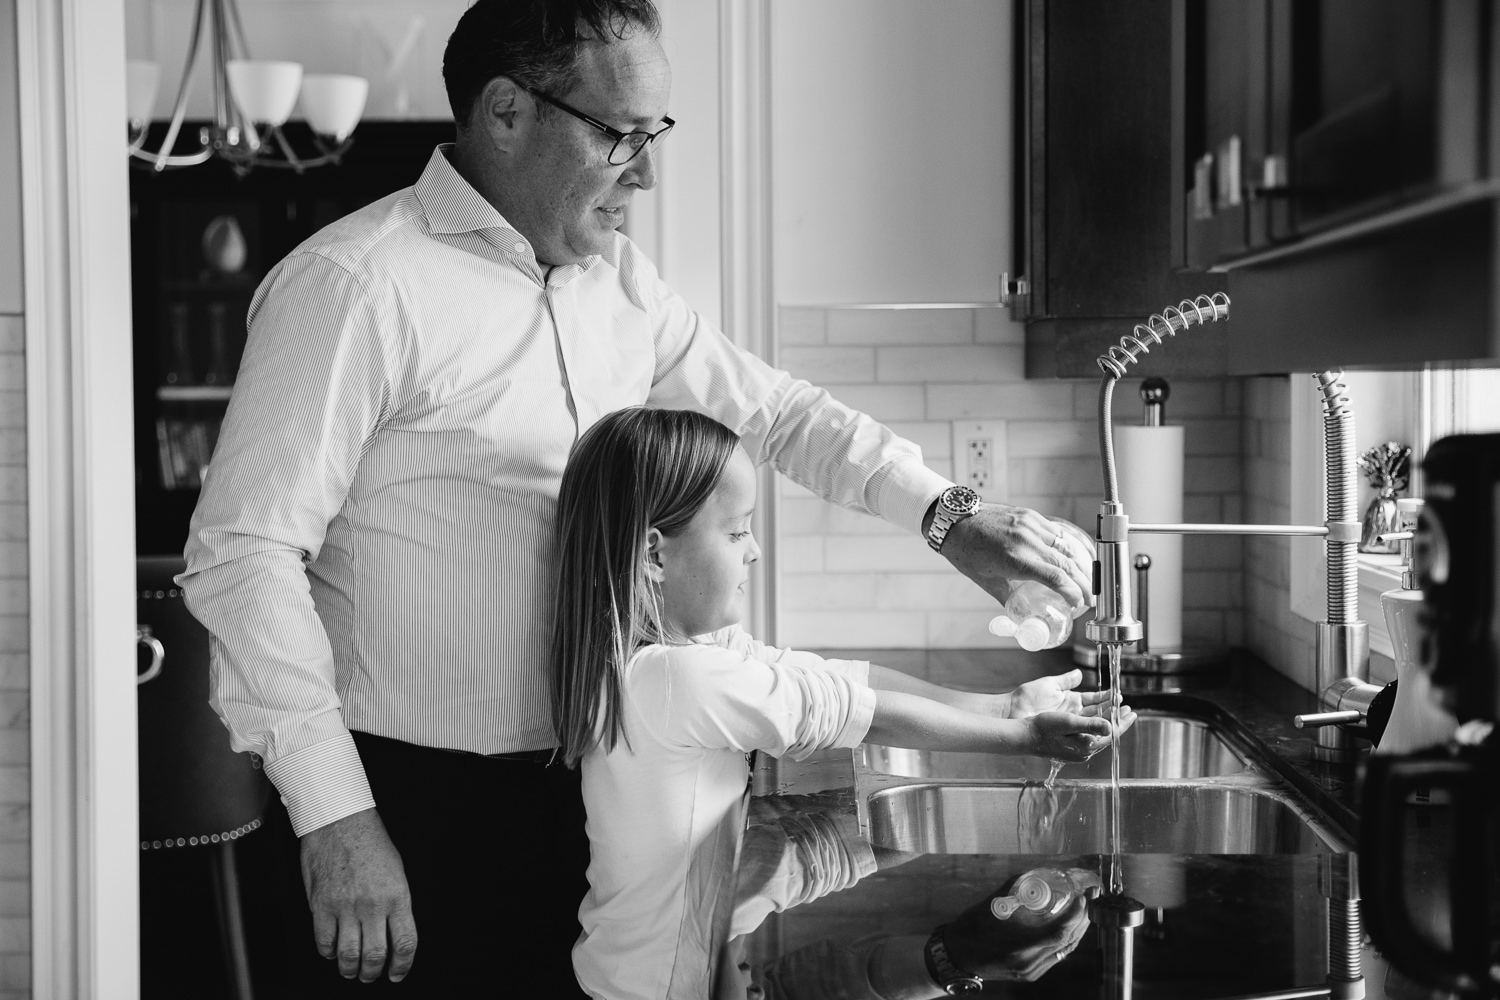 father and 8 year old daughter standing at kitchen sink, dad pouring dish soap into girl's outstretched hands - Markham In-Home Photos